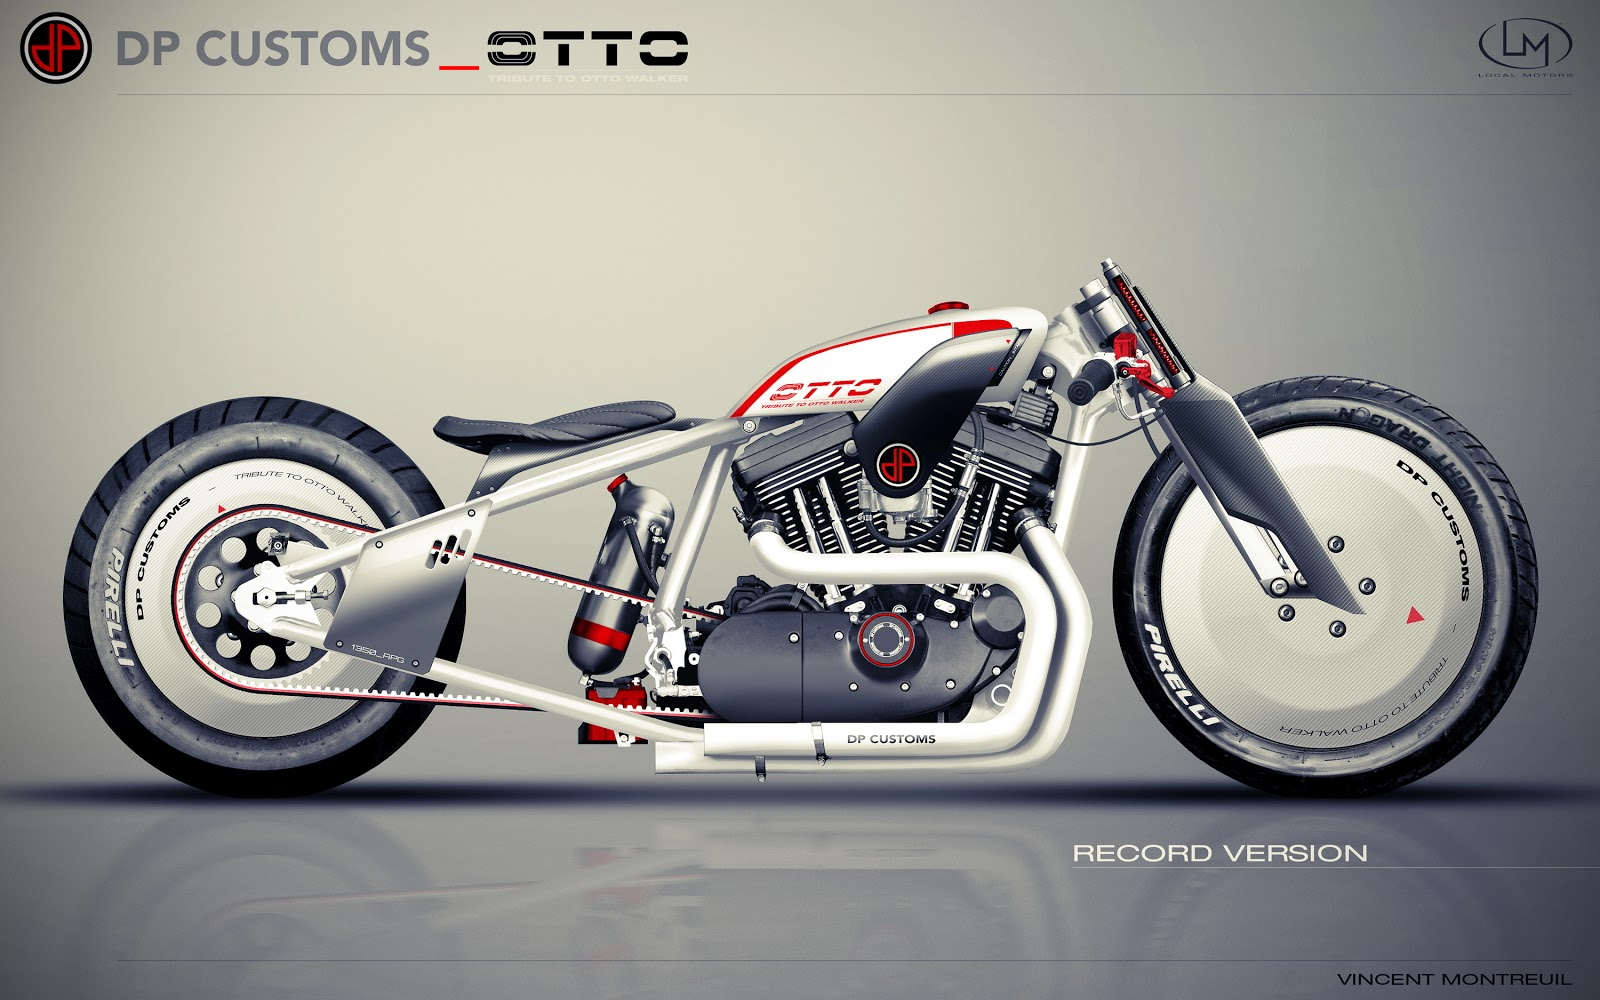 diagram of an atom with labels towbar trailer plug wiring :: free the wheels ::: dp customs motorcycle design challenge